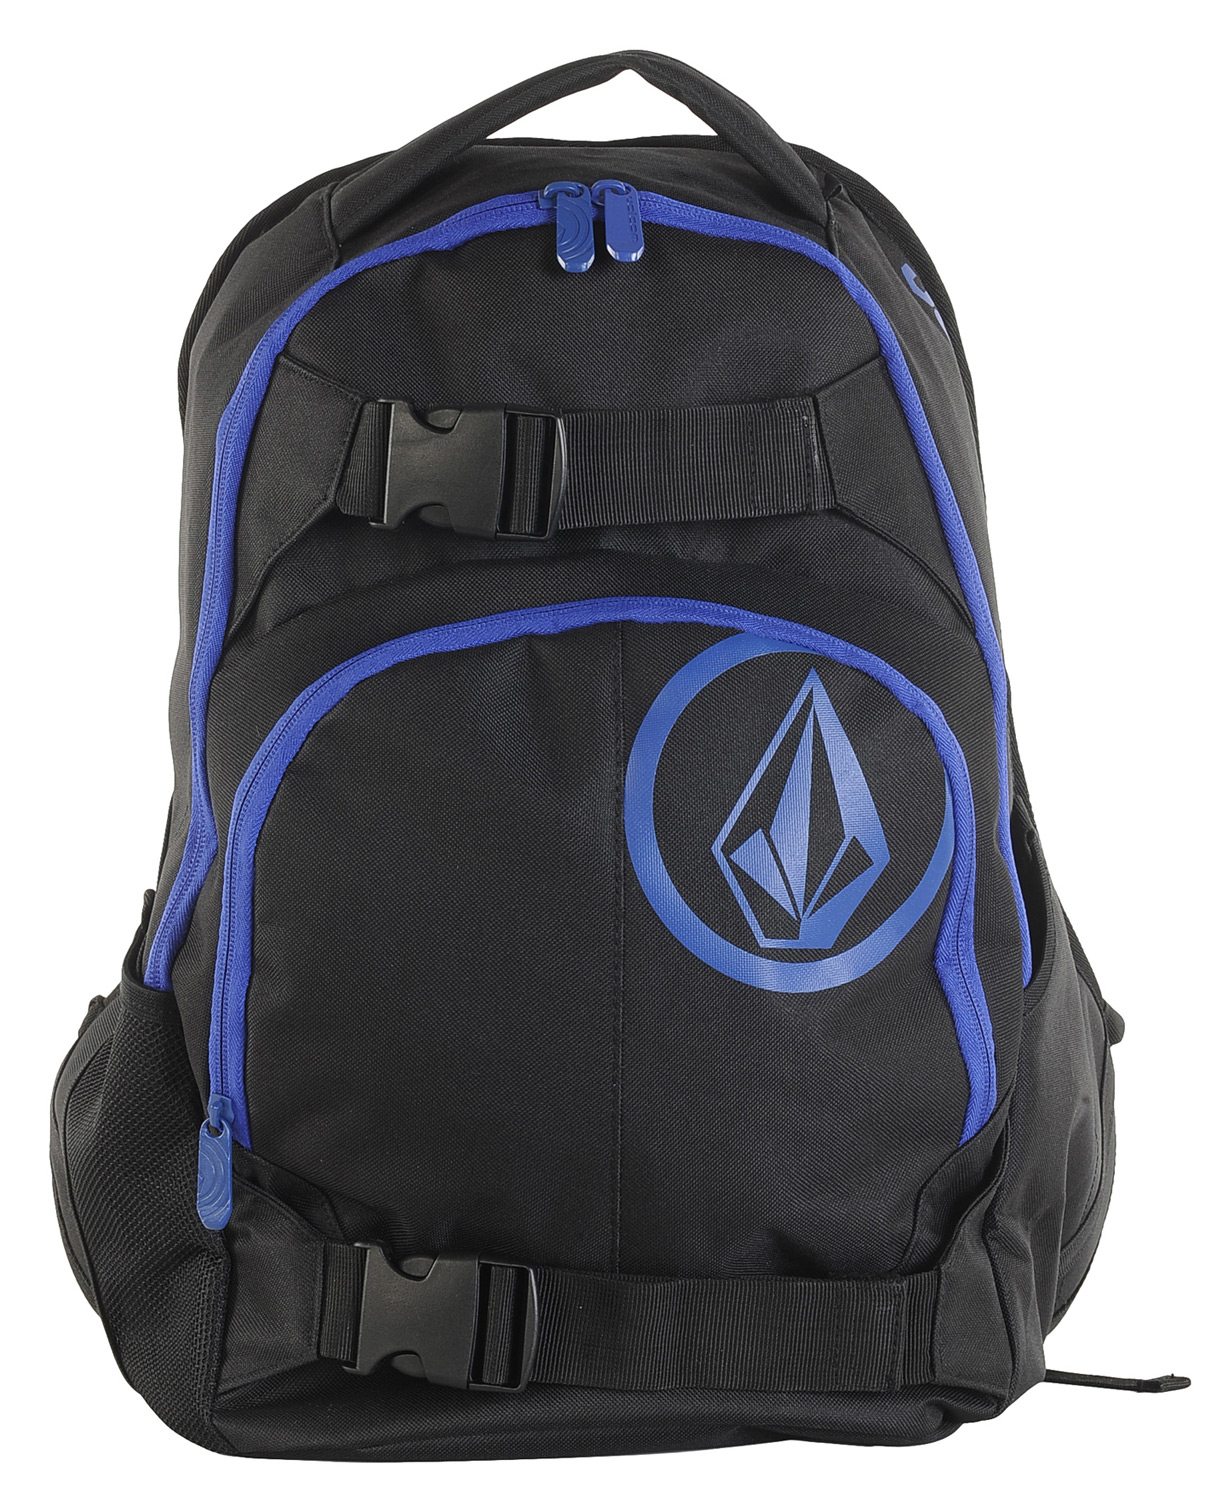 "Surf Key Features of the Volcom Equilibrium Stoneage Backpack: Volume: 1891in³ [31L] Dimensions: 19.75 x 13 x 7.75"" [50 x 33 x 20cm] Weight: 1.5lb [0.66kg] Three compartment backpack with 'Volcom/Stone' gel prints 300D polyester - $31.95"